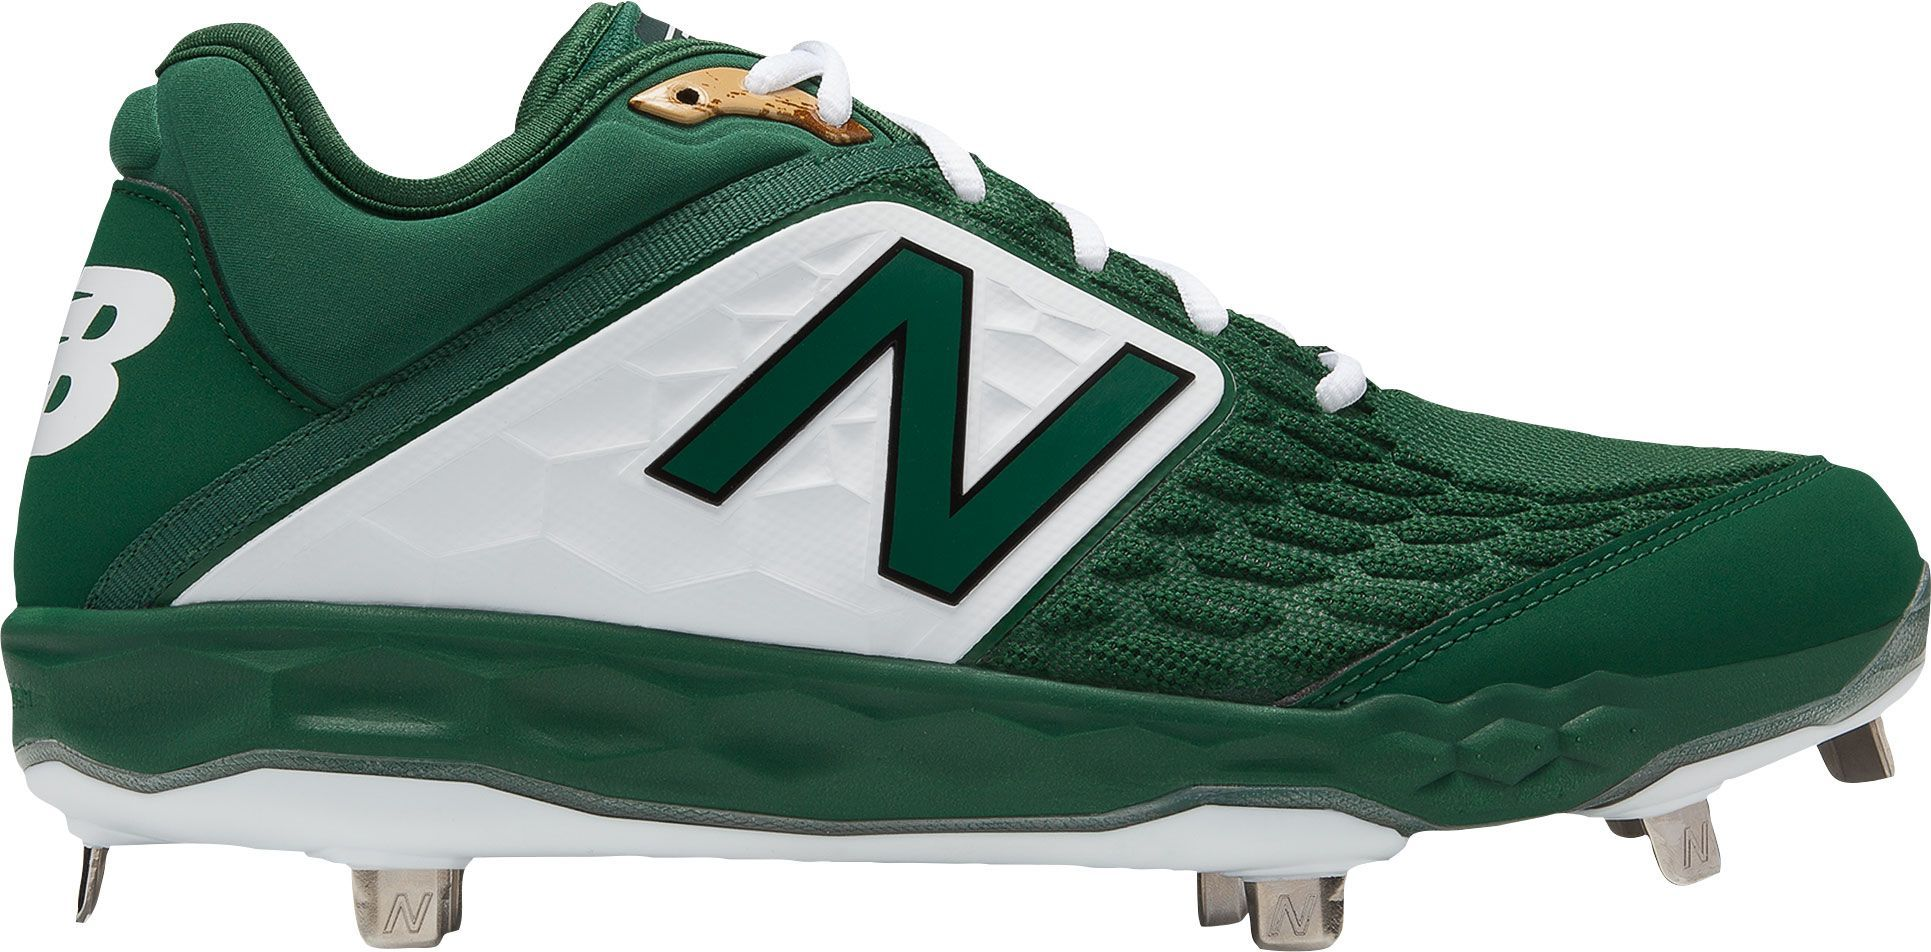 925233eee7269 New Balance Men's 3000 V4 Metal Baseball Cleats, Size: 7.0, Red ...